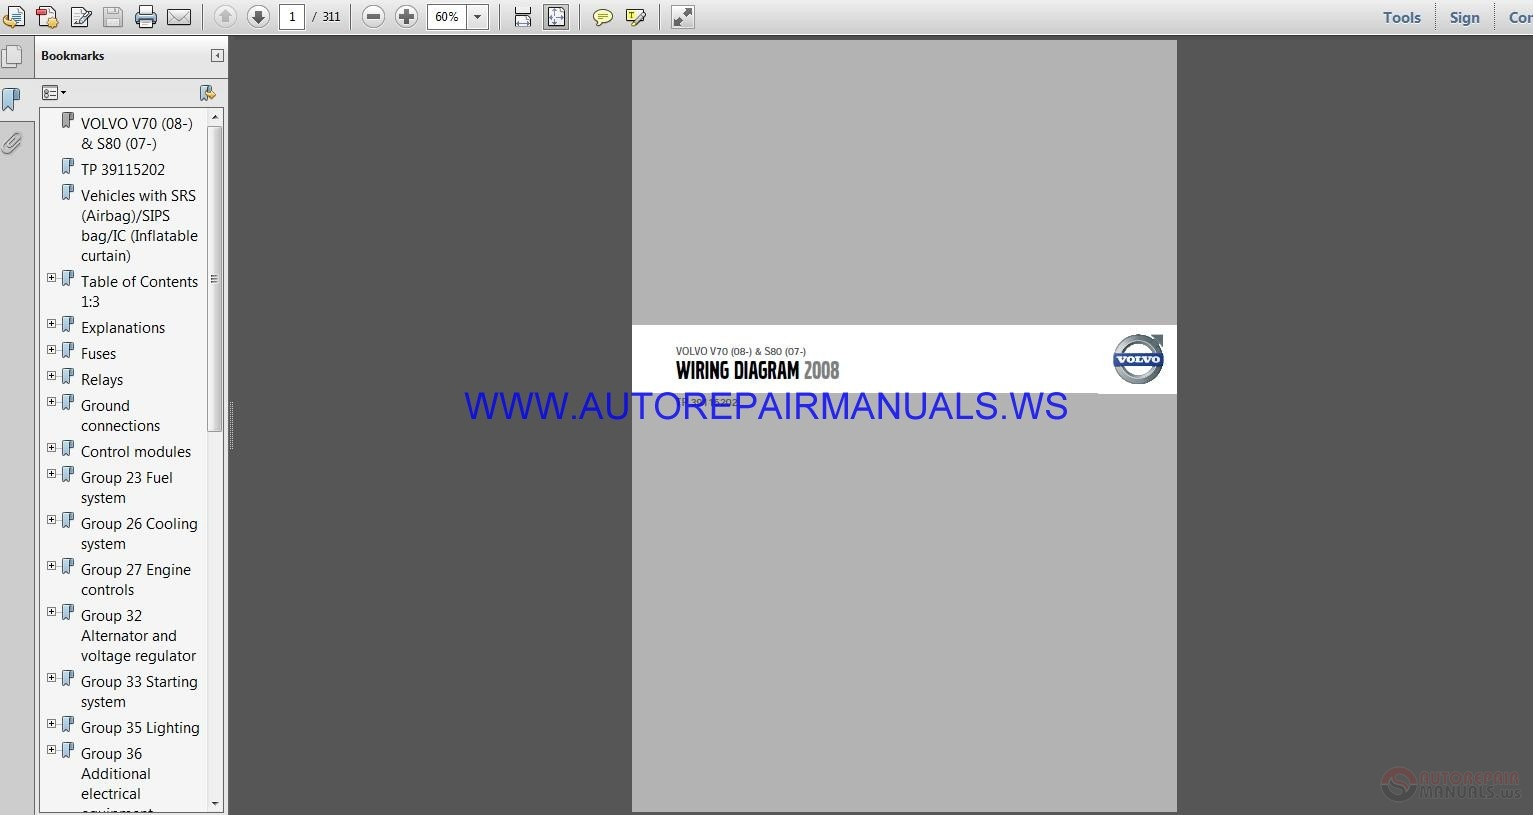 Volvo V70 S80 TP 39115202 Wiring Diagram Manual | Auto ... on volvo ignition wiring diagram, volvo s70 transmission, volvo s70 door, volvo s70 relay, volvo s70 spark plugs, volvo s70 battery, volvo s40 wiring-diagram, volvo s70 rear suspension, 2002 volvo s60 fuse diagram, volvo s70 headlight fuse, volvo s70 safety, volvo s70 ac problems, volvo s70 ignition switch, volvo s70 timing marks, volvo s70 tires, volvo s70 exhaust diagram, volvo amazon wiring diagram, volvo s70 user manual, volvo s70 oil pump, bobcat s70 wiring diagram,